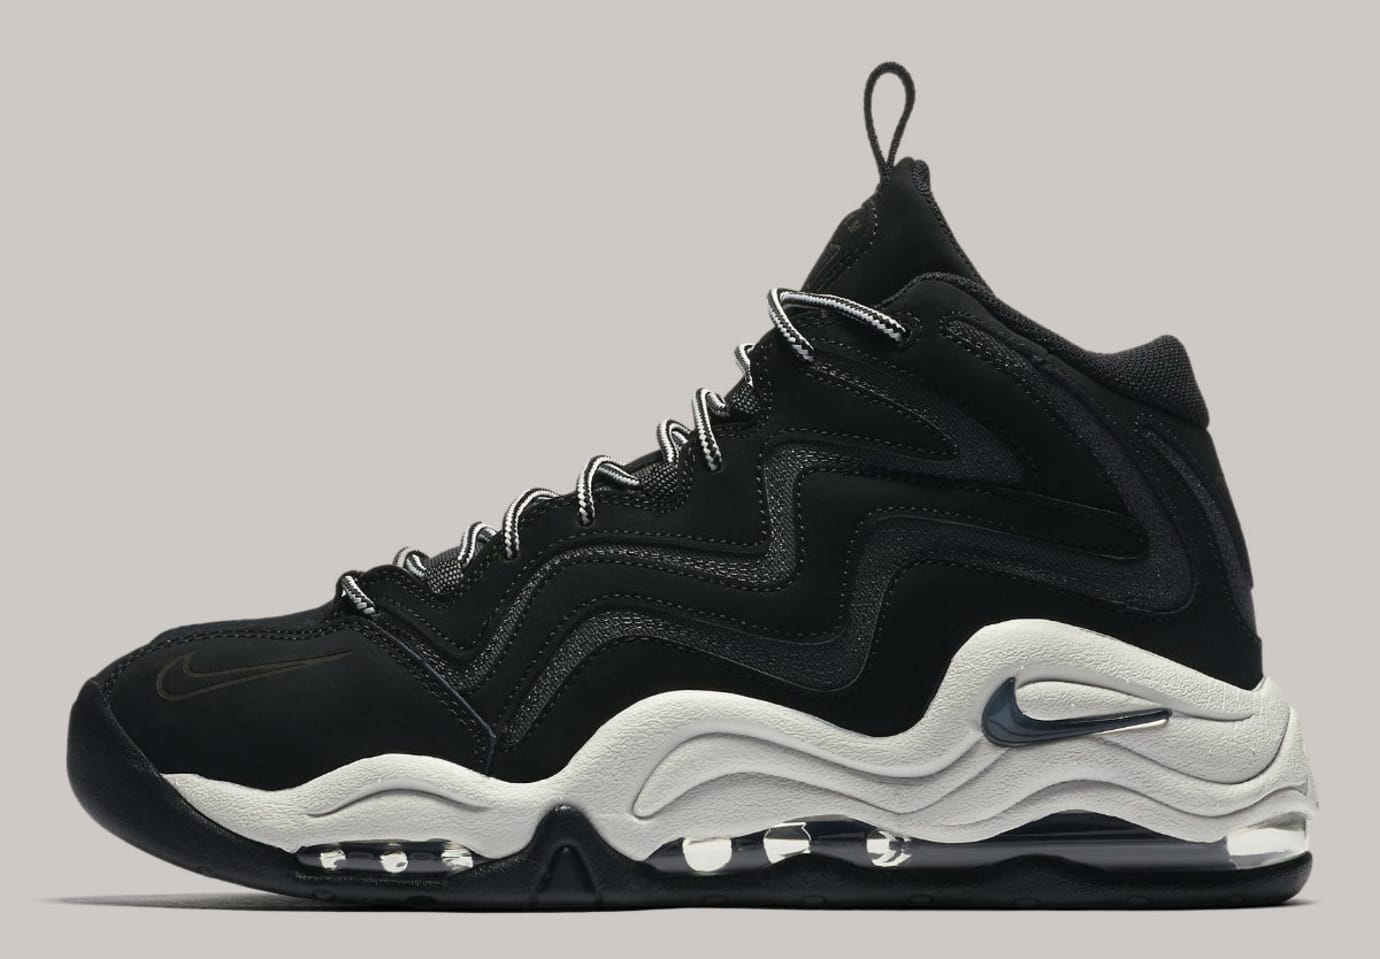 9fe1f3814405 Nike Air Pippen Black Anthracite Vast Grey Release Date 325001-004 Profile